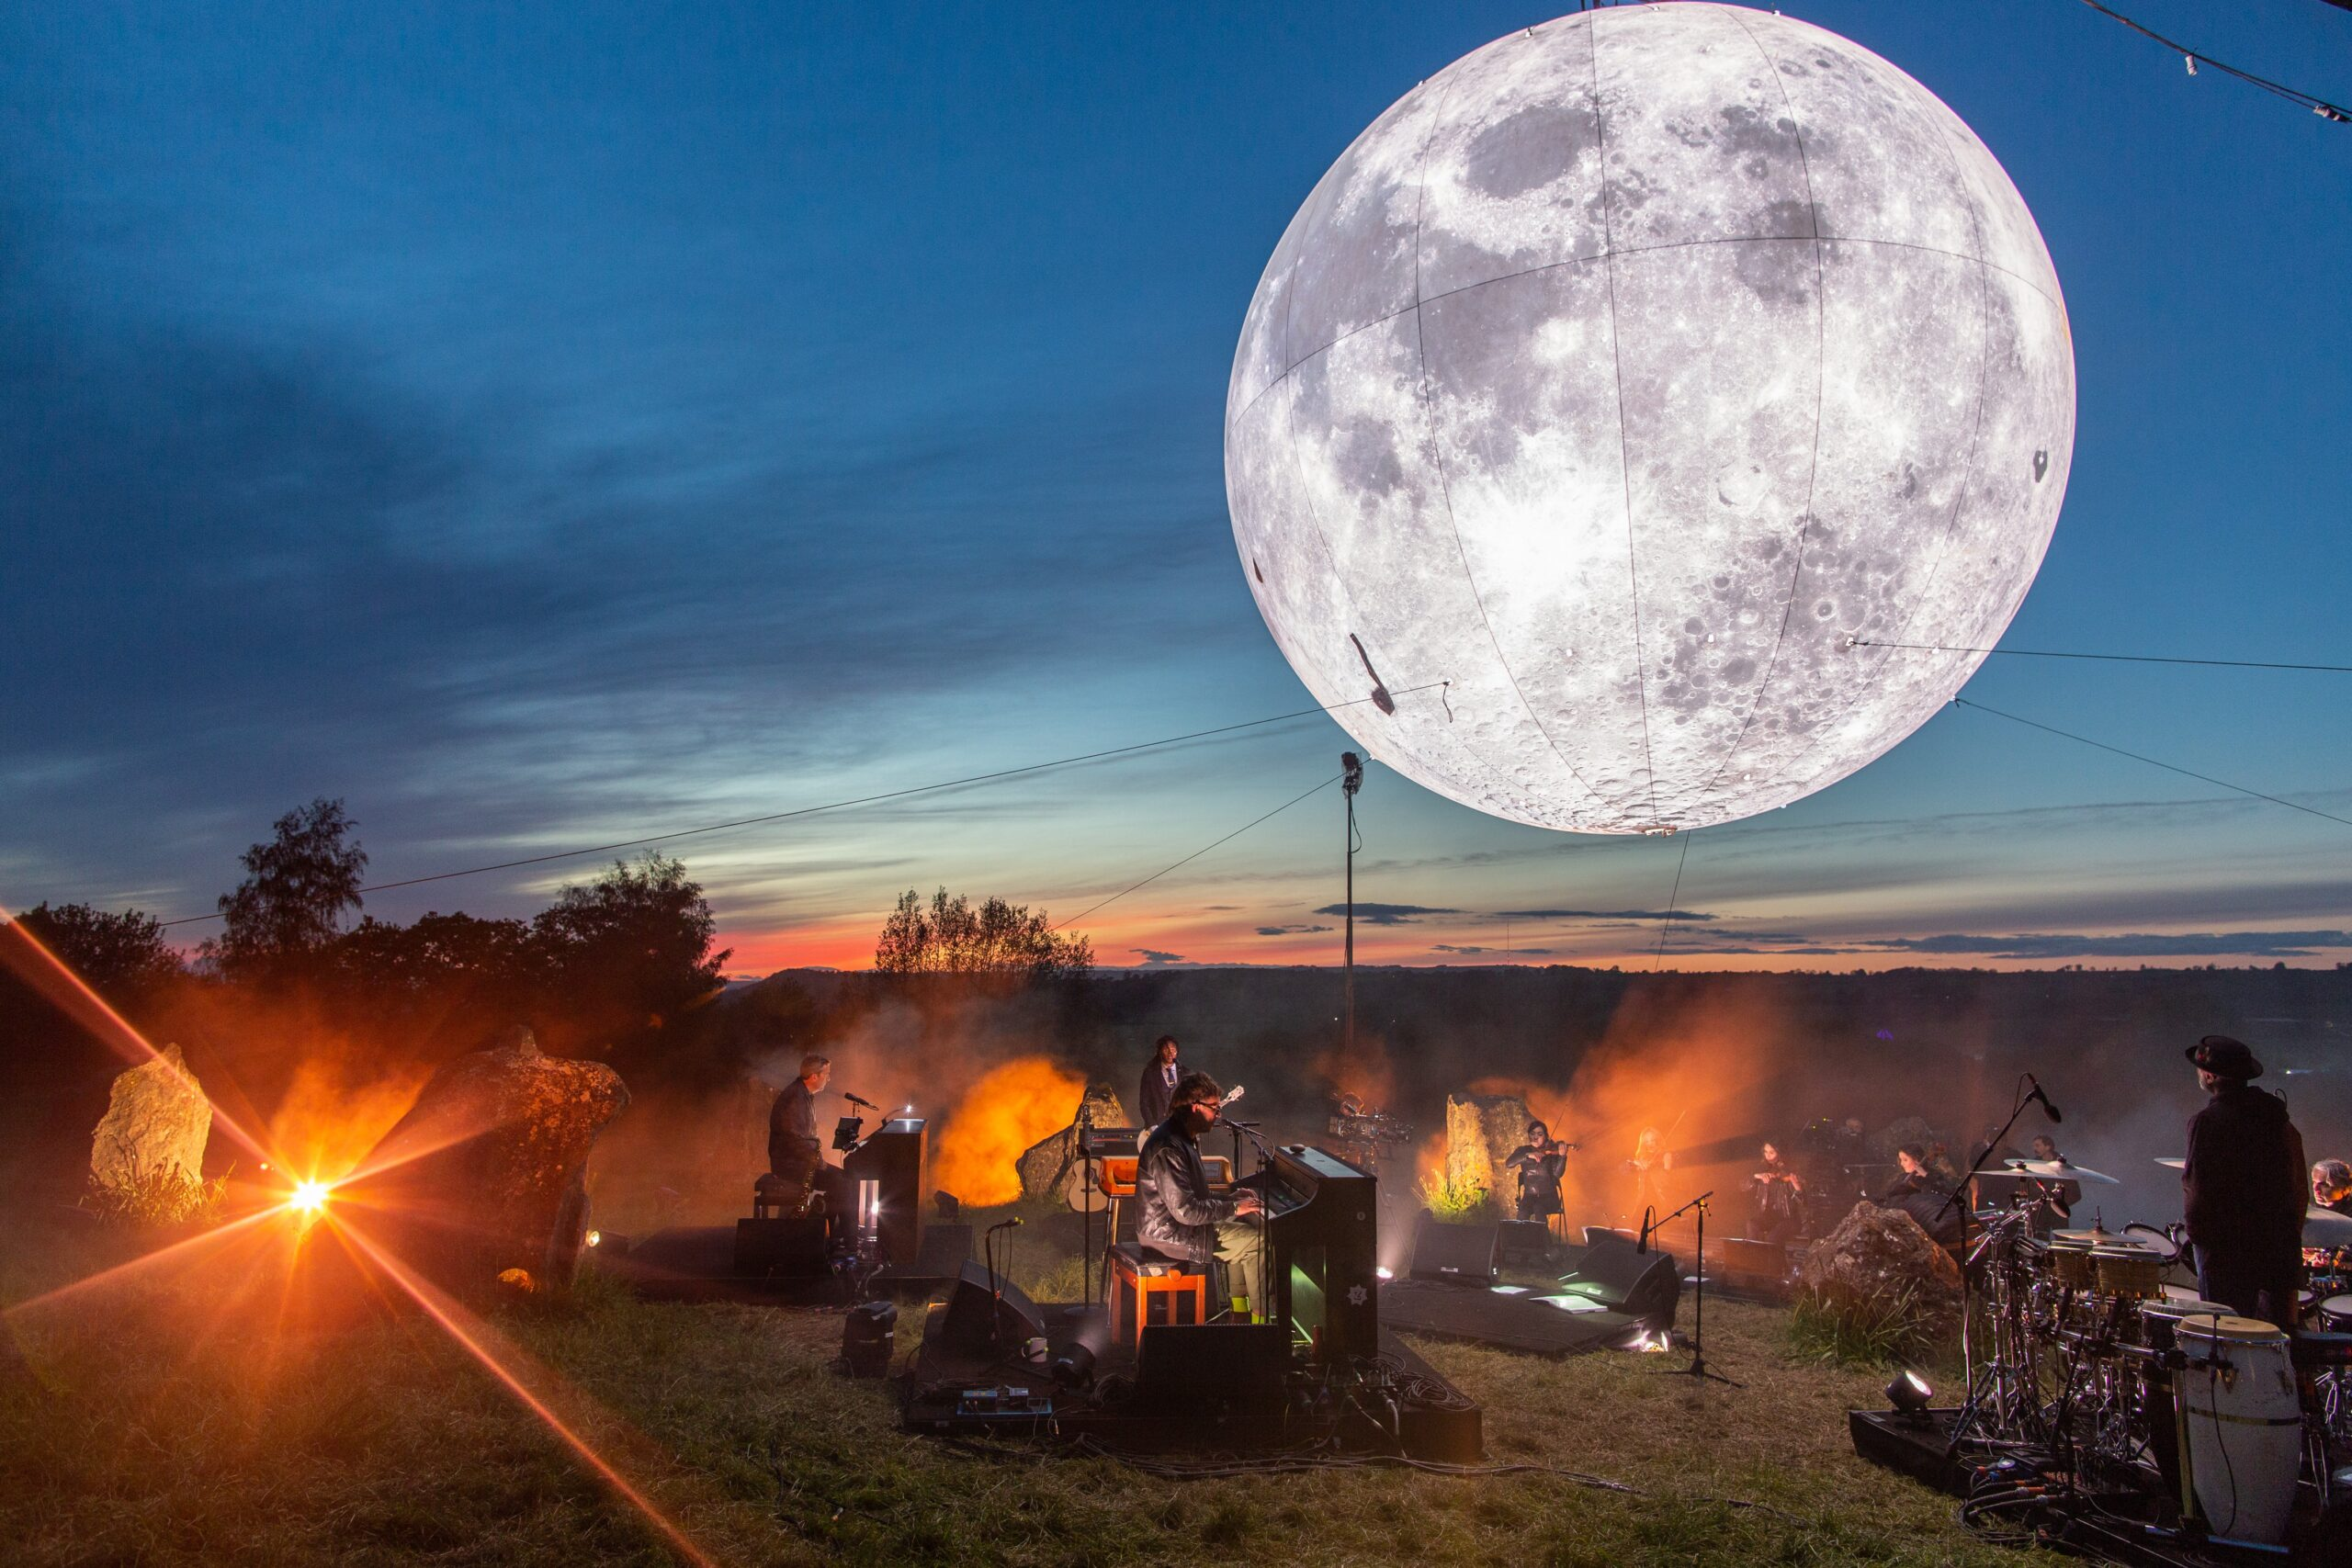 GMovies, Upstream give Filipinos a rocking good time at the Glastonbury Festival